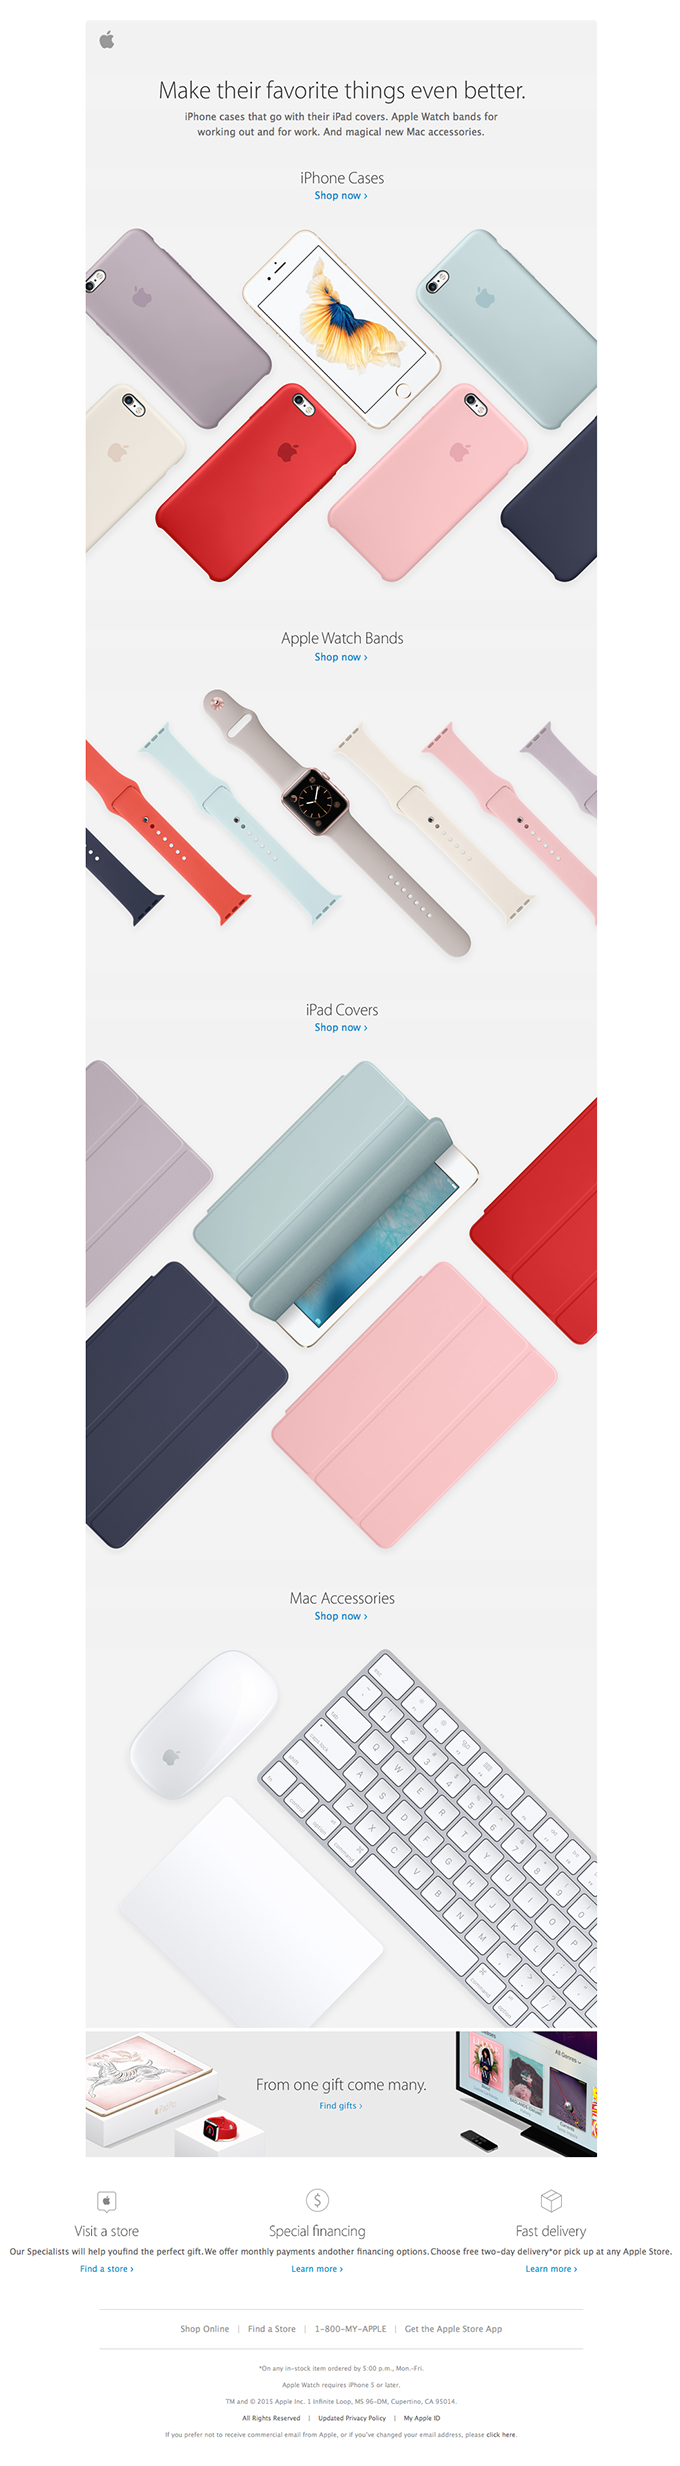 Give-great-accessories-from-Apple-680x2466